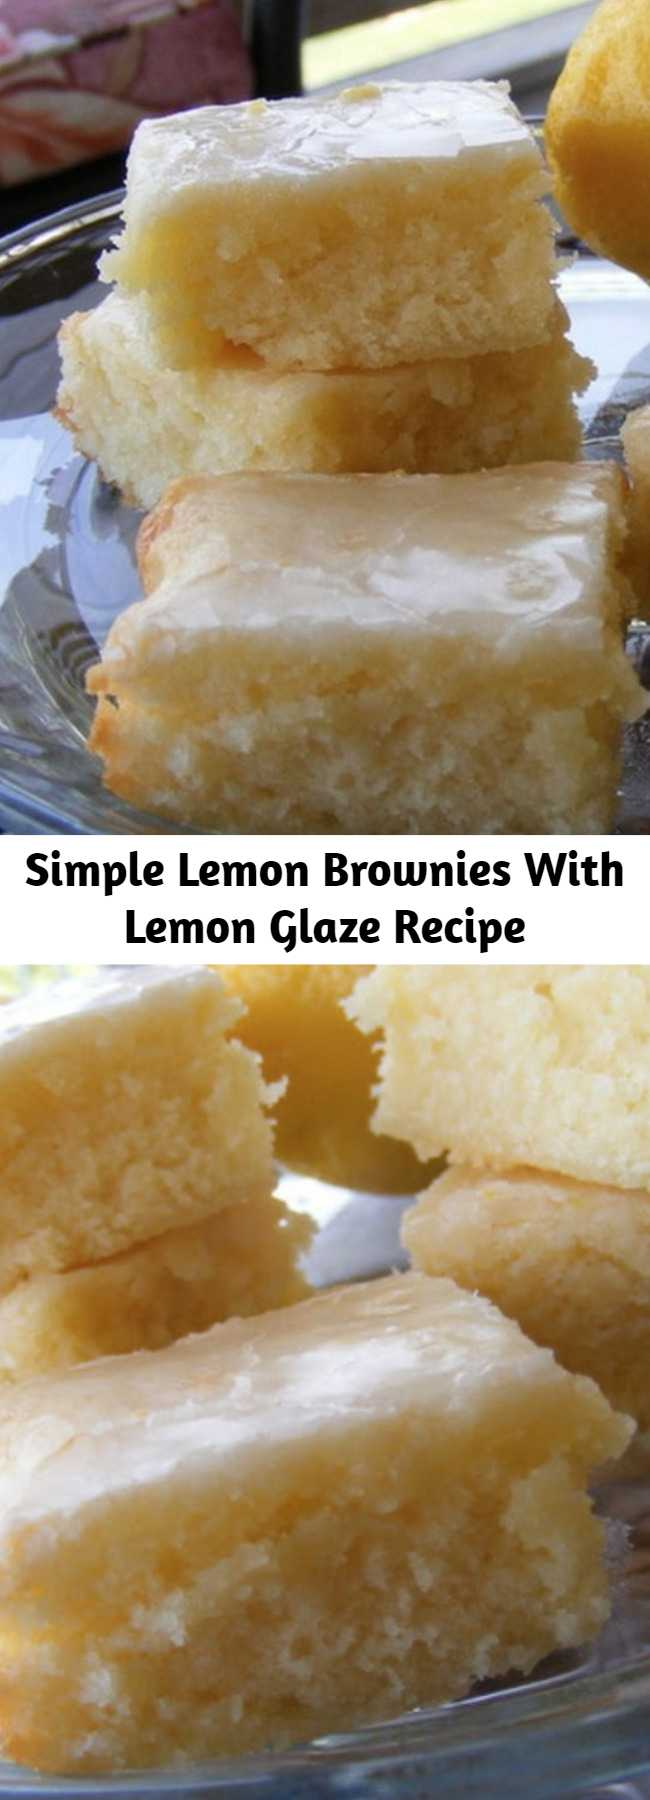 Simple Lemon Brownies With Lemon Glaze Recipe - Delicious and EASY to make Lemon Brownies with a sweet Lemon Glaze frosting that's so good you won't eat just one! Make these in minutes for your family!